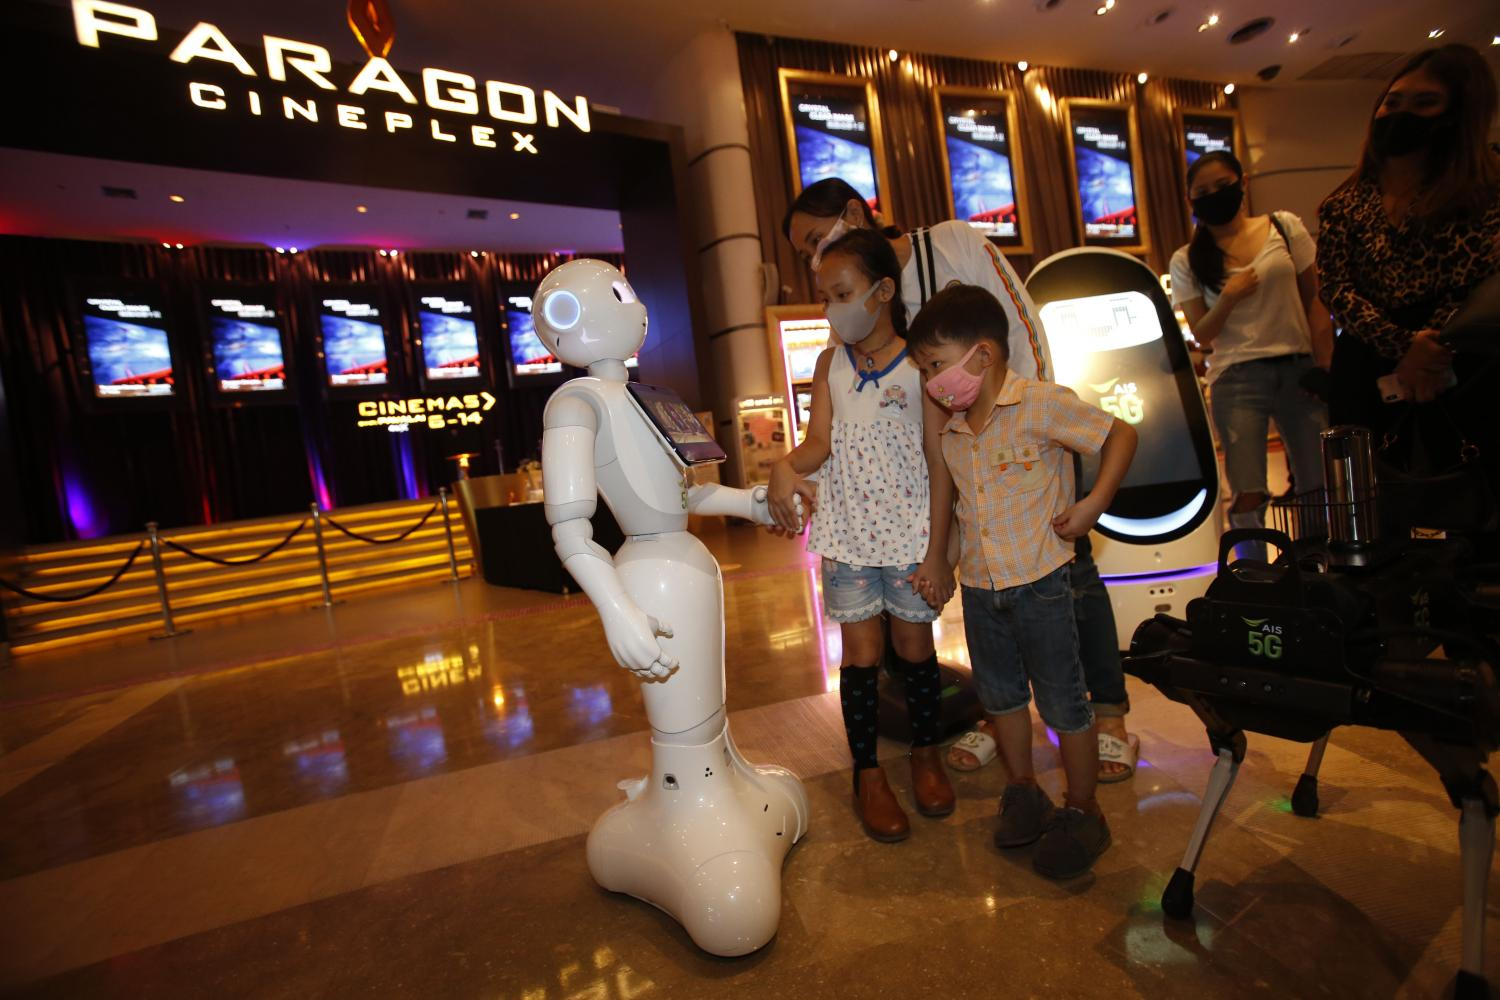 Robots greet movie-goers at Paragon Cineplex, which resumed services on Monday. The robot lures customers by showing movie trailers.(Photo by Pornprom Satrabhaya)